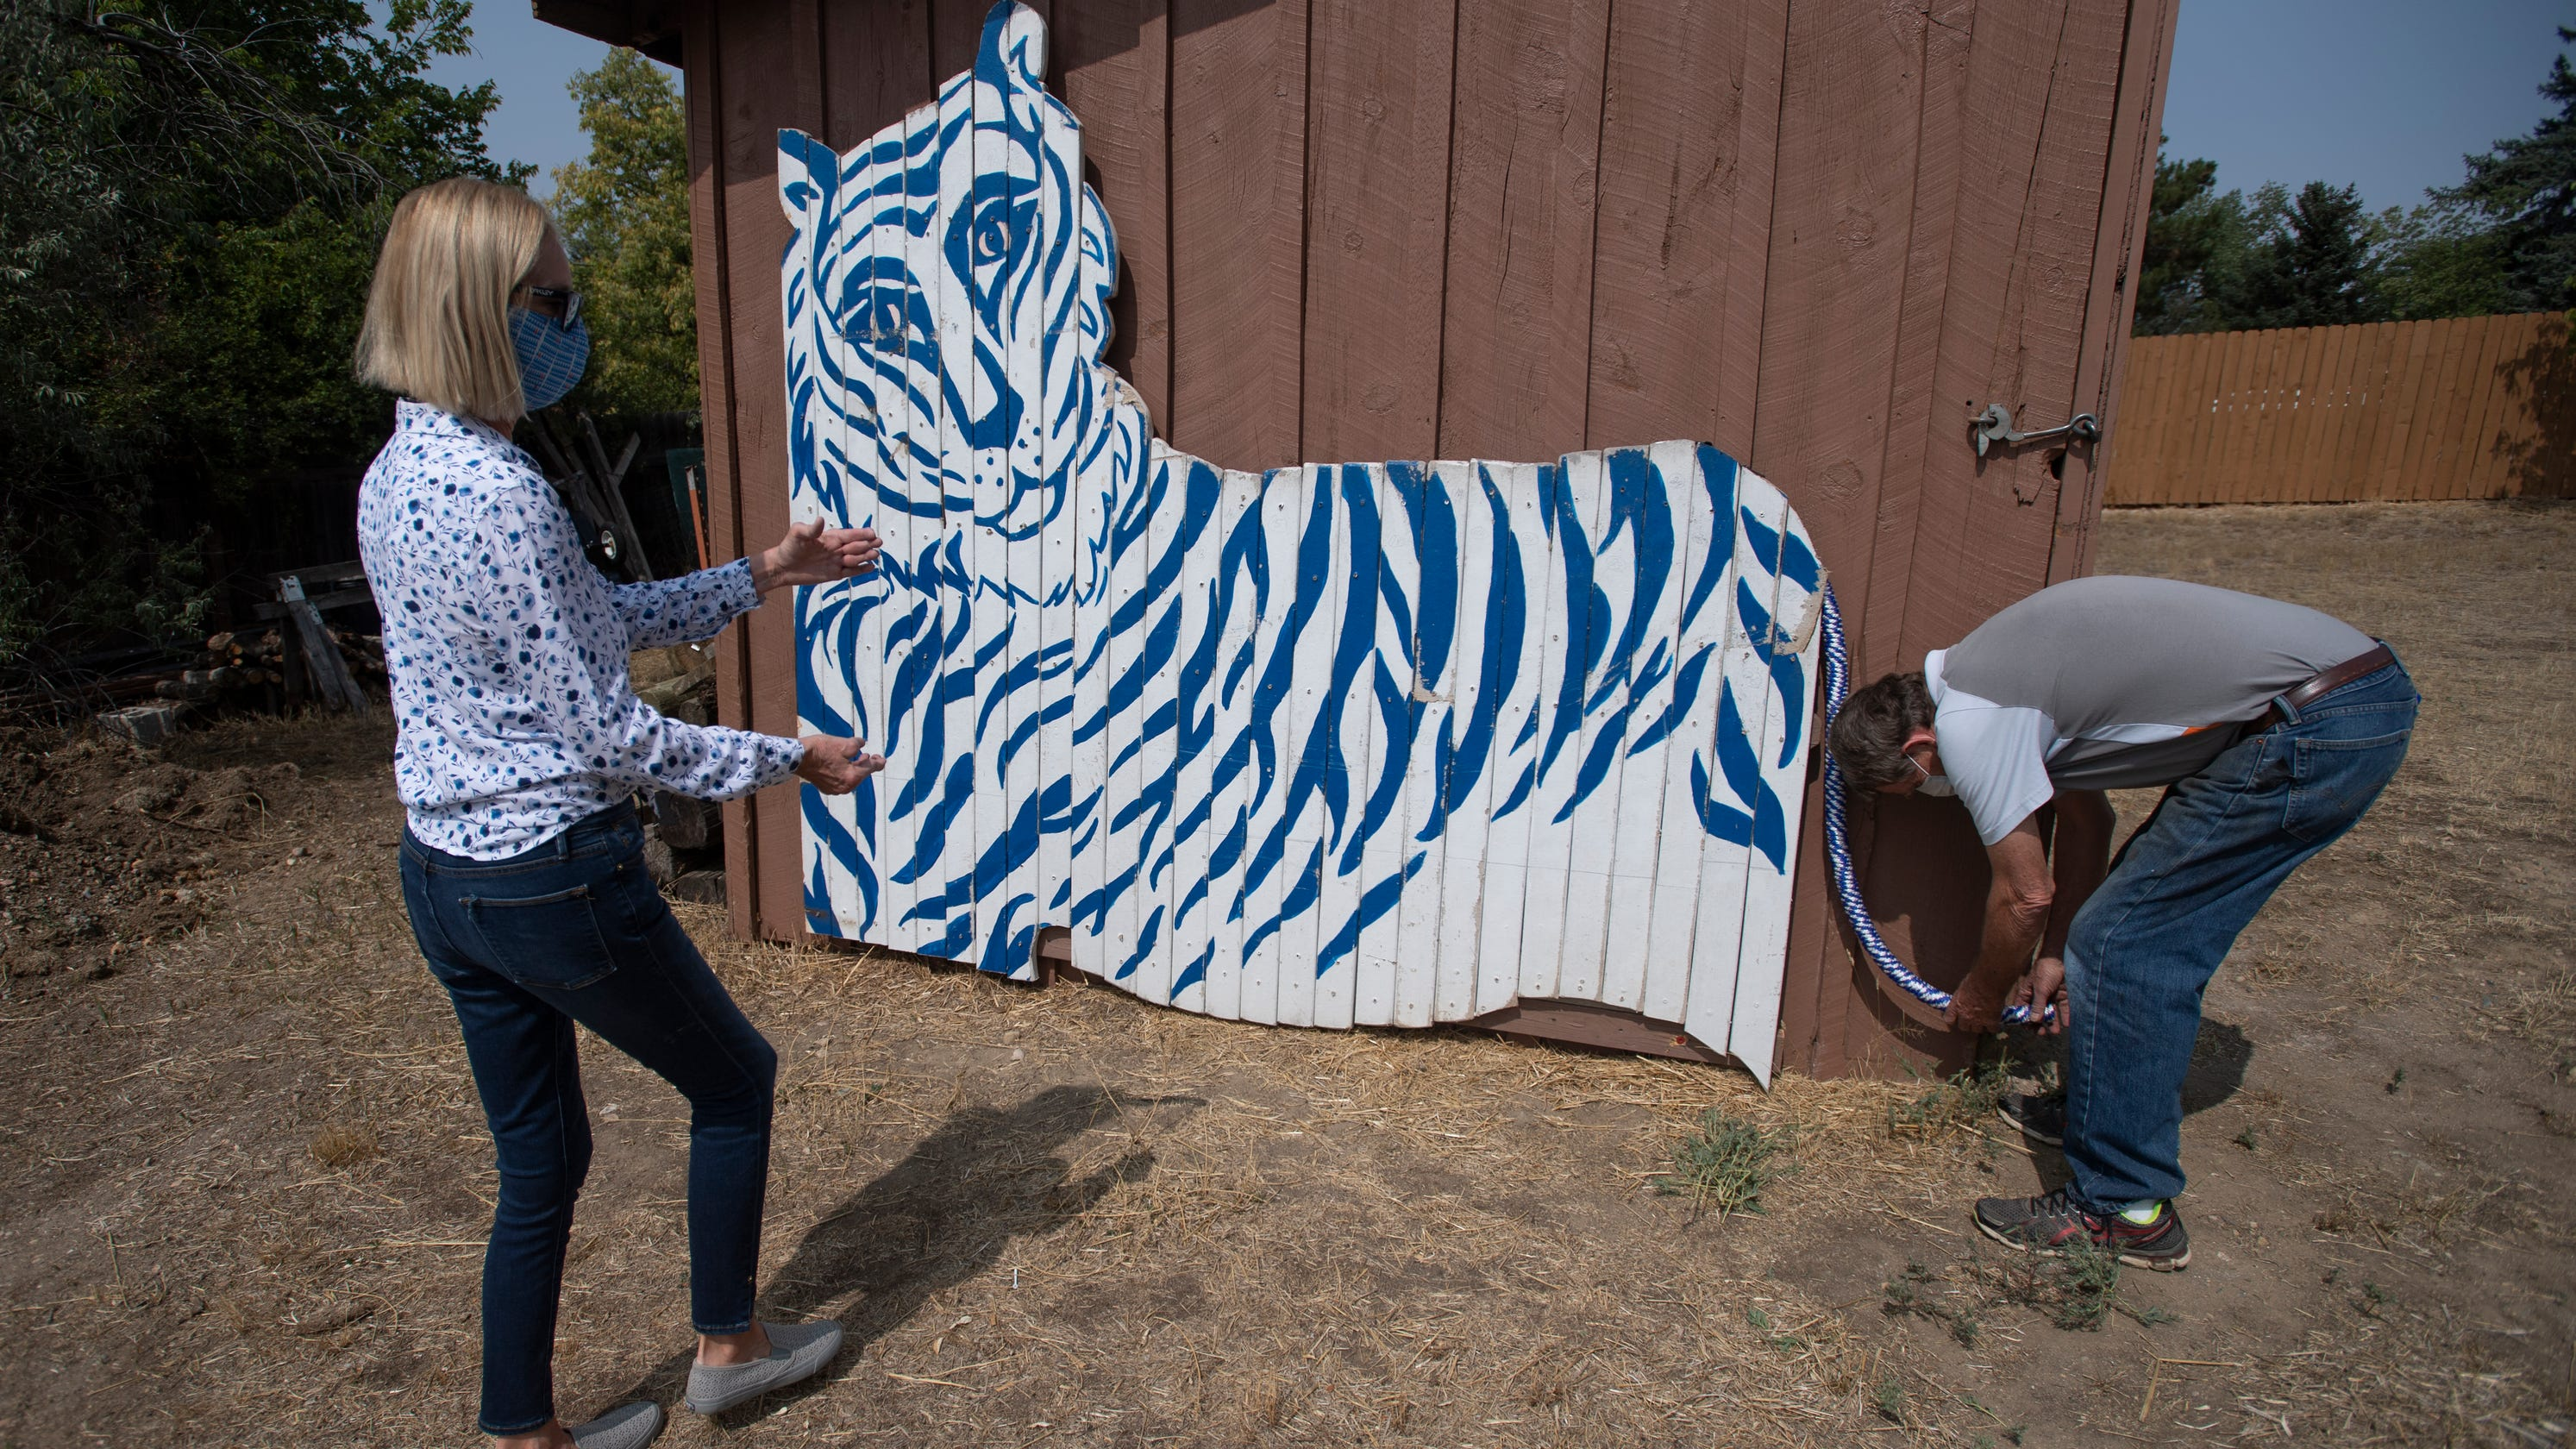 Tavelli Elementary's 'Tiger World' playground is gone, but its beloved tiger lives on